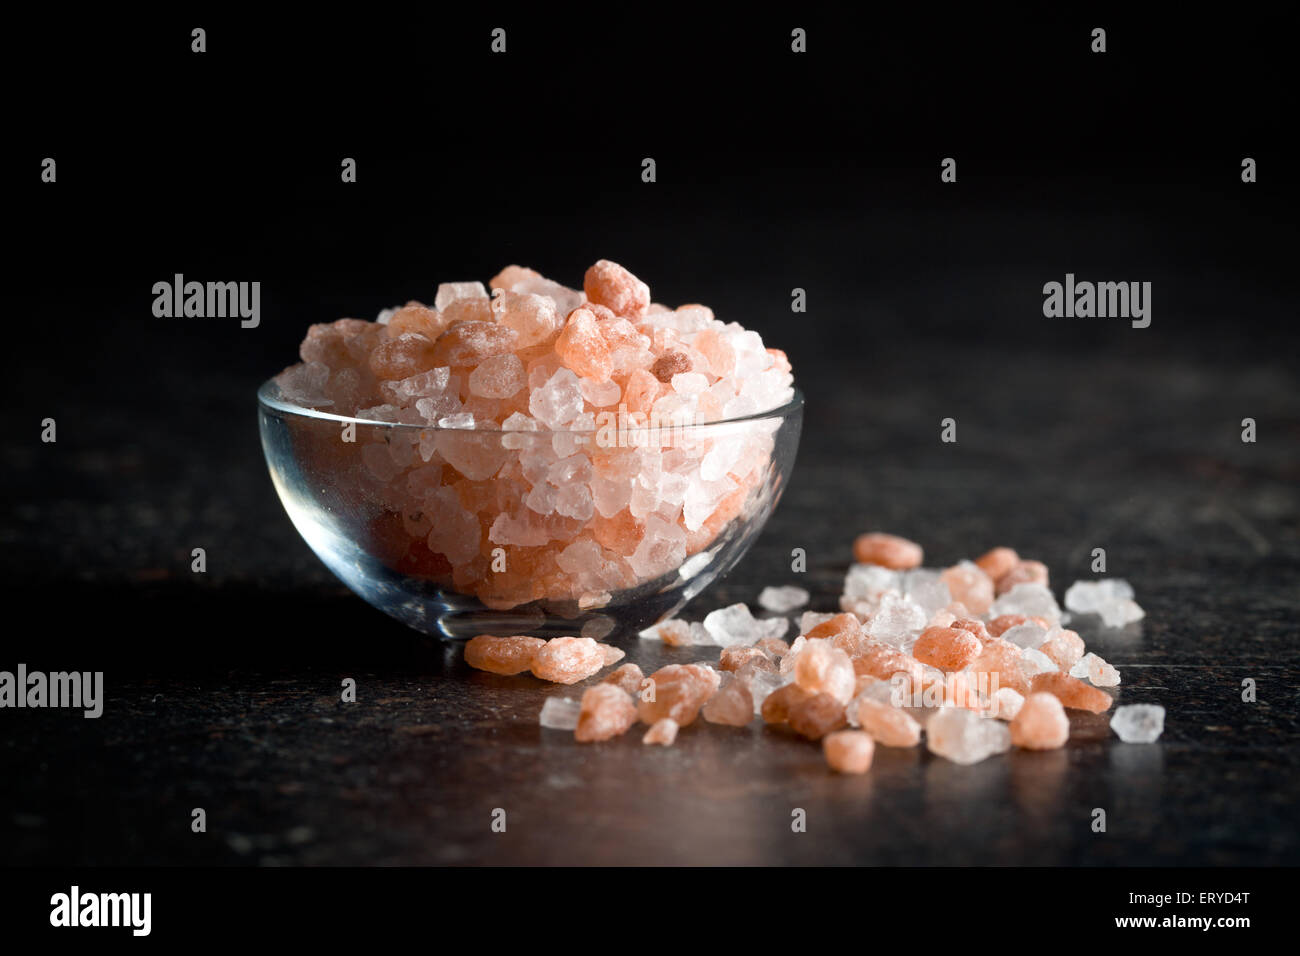 Himalayan salt in bowl on kitchen table - Stock Image